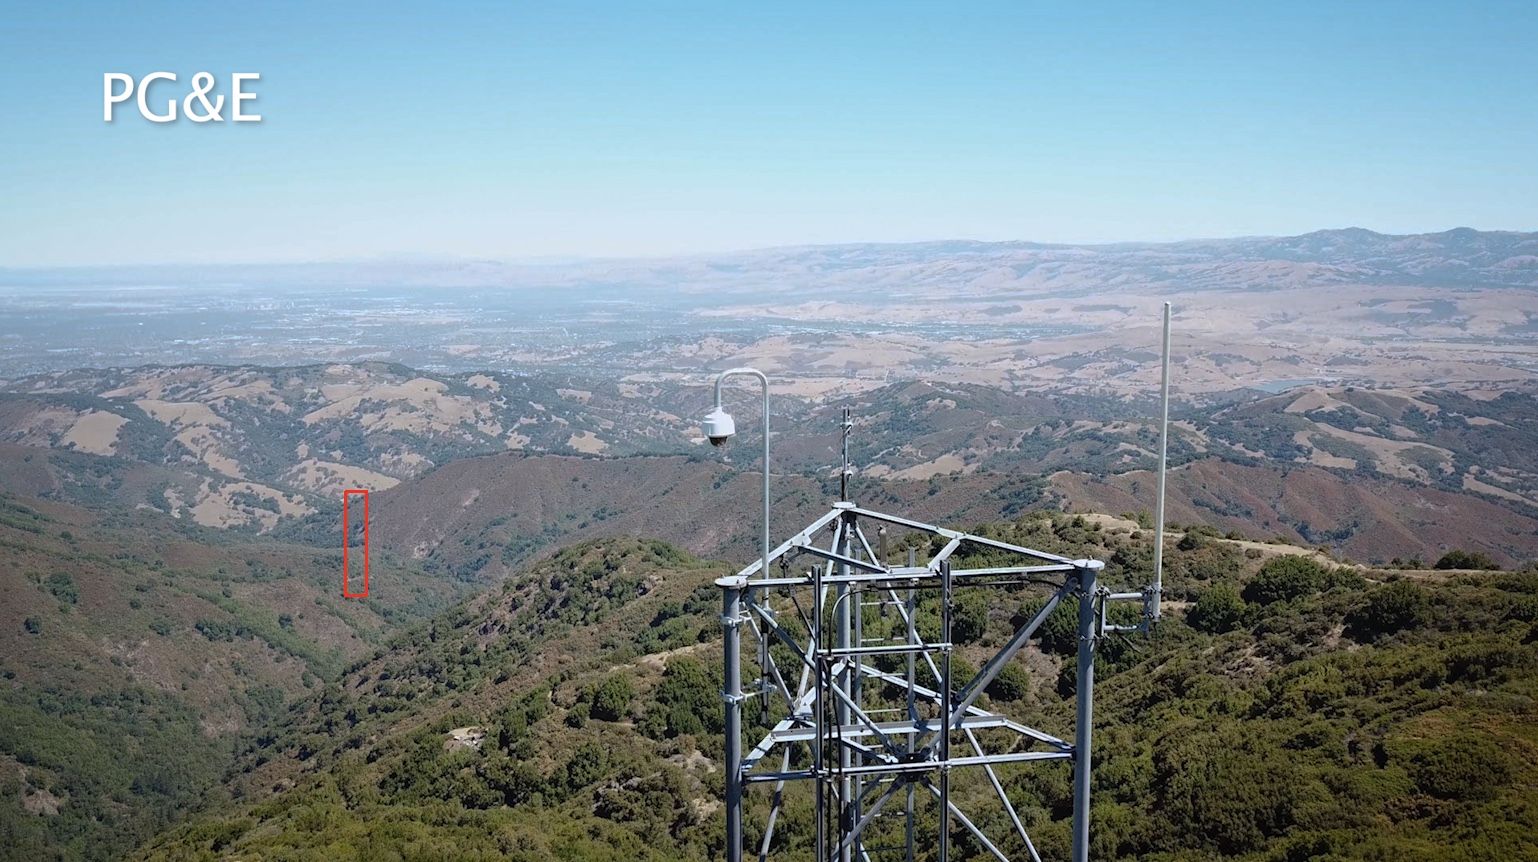 High-definition cameras helping PG&E and fire departments predict, respond to extreme wildfire danger - NewsChannel 3-12